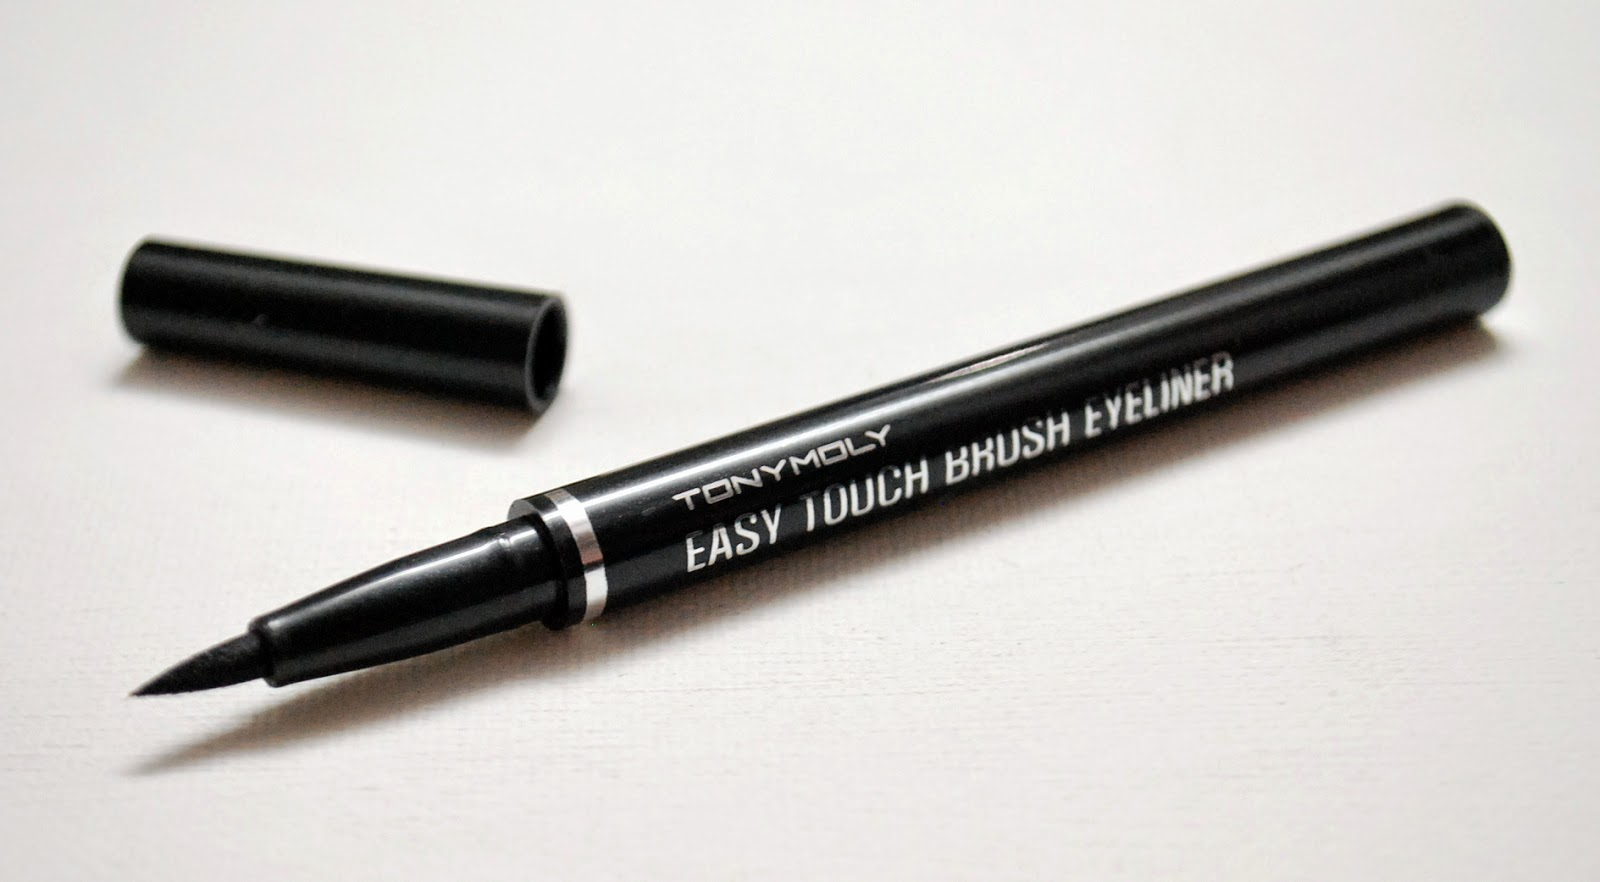 Peachy Pink Sisters: Review : Tony Moly Easy Touch Brush Eyeliner